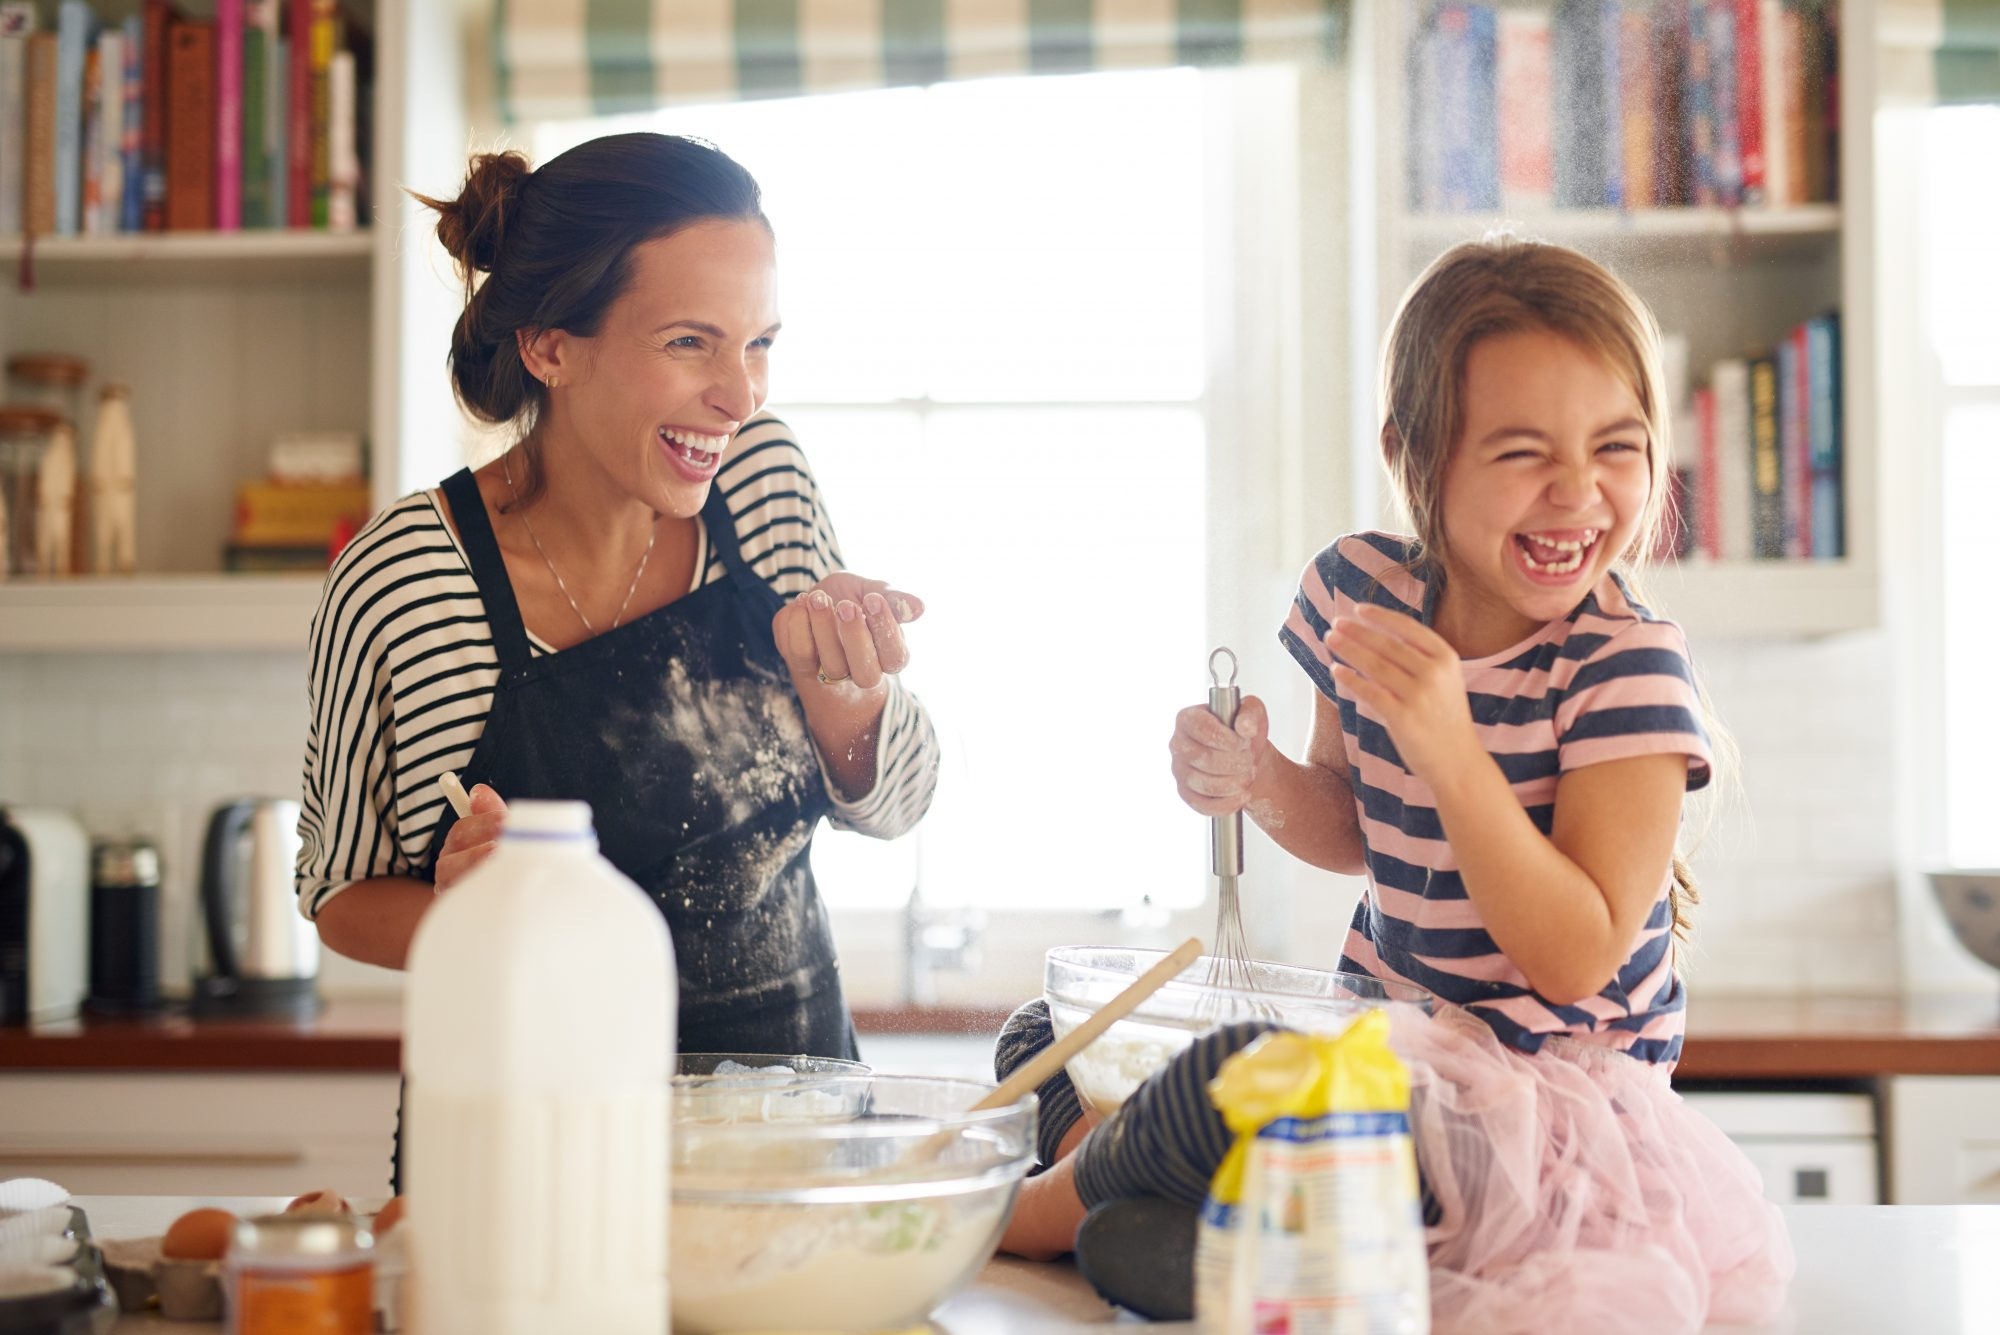 Mother and daughter happily baking in kitchen.